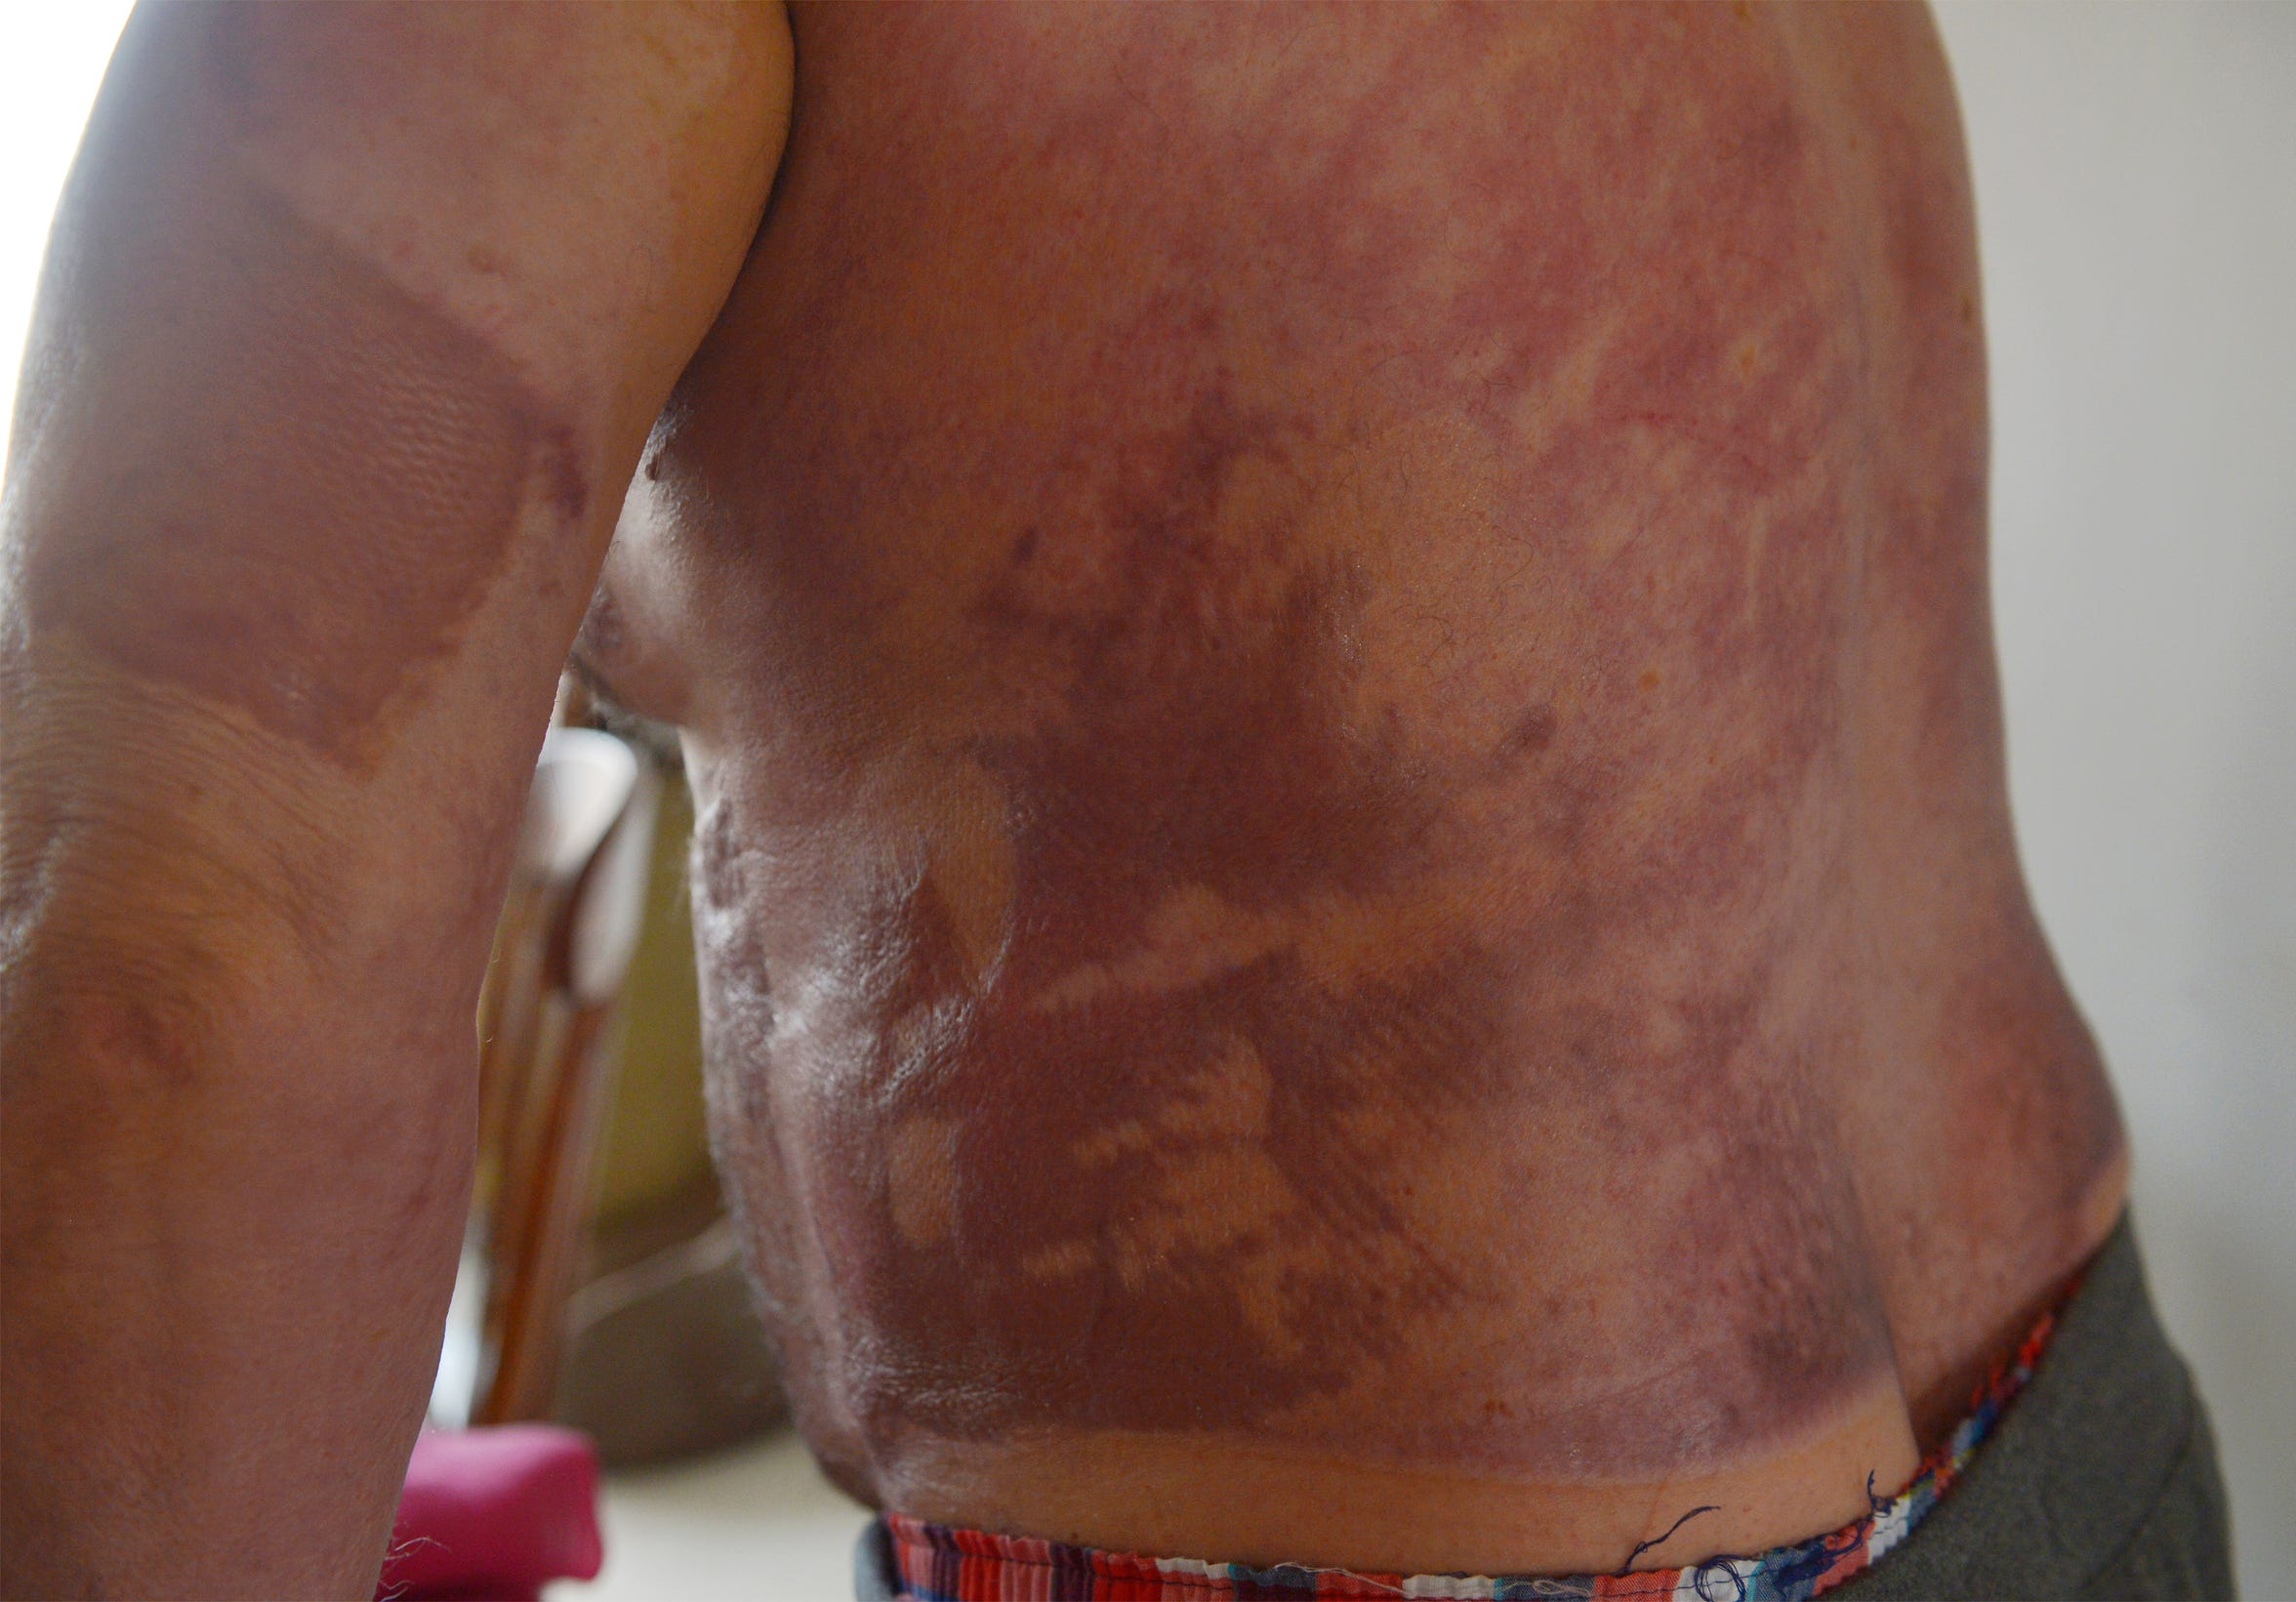 Chuck Merja was burned over most of the left side of his body in a farming accident in May of this year. His injuries required a long hospital stay and extensive skin grafts.